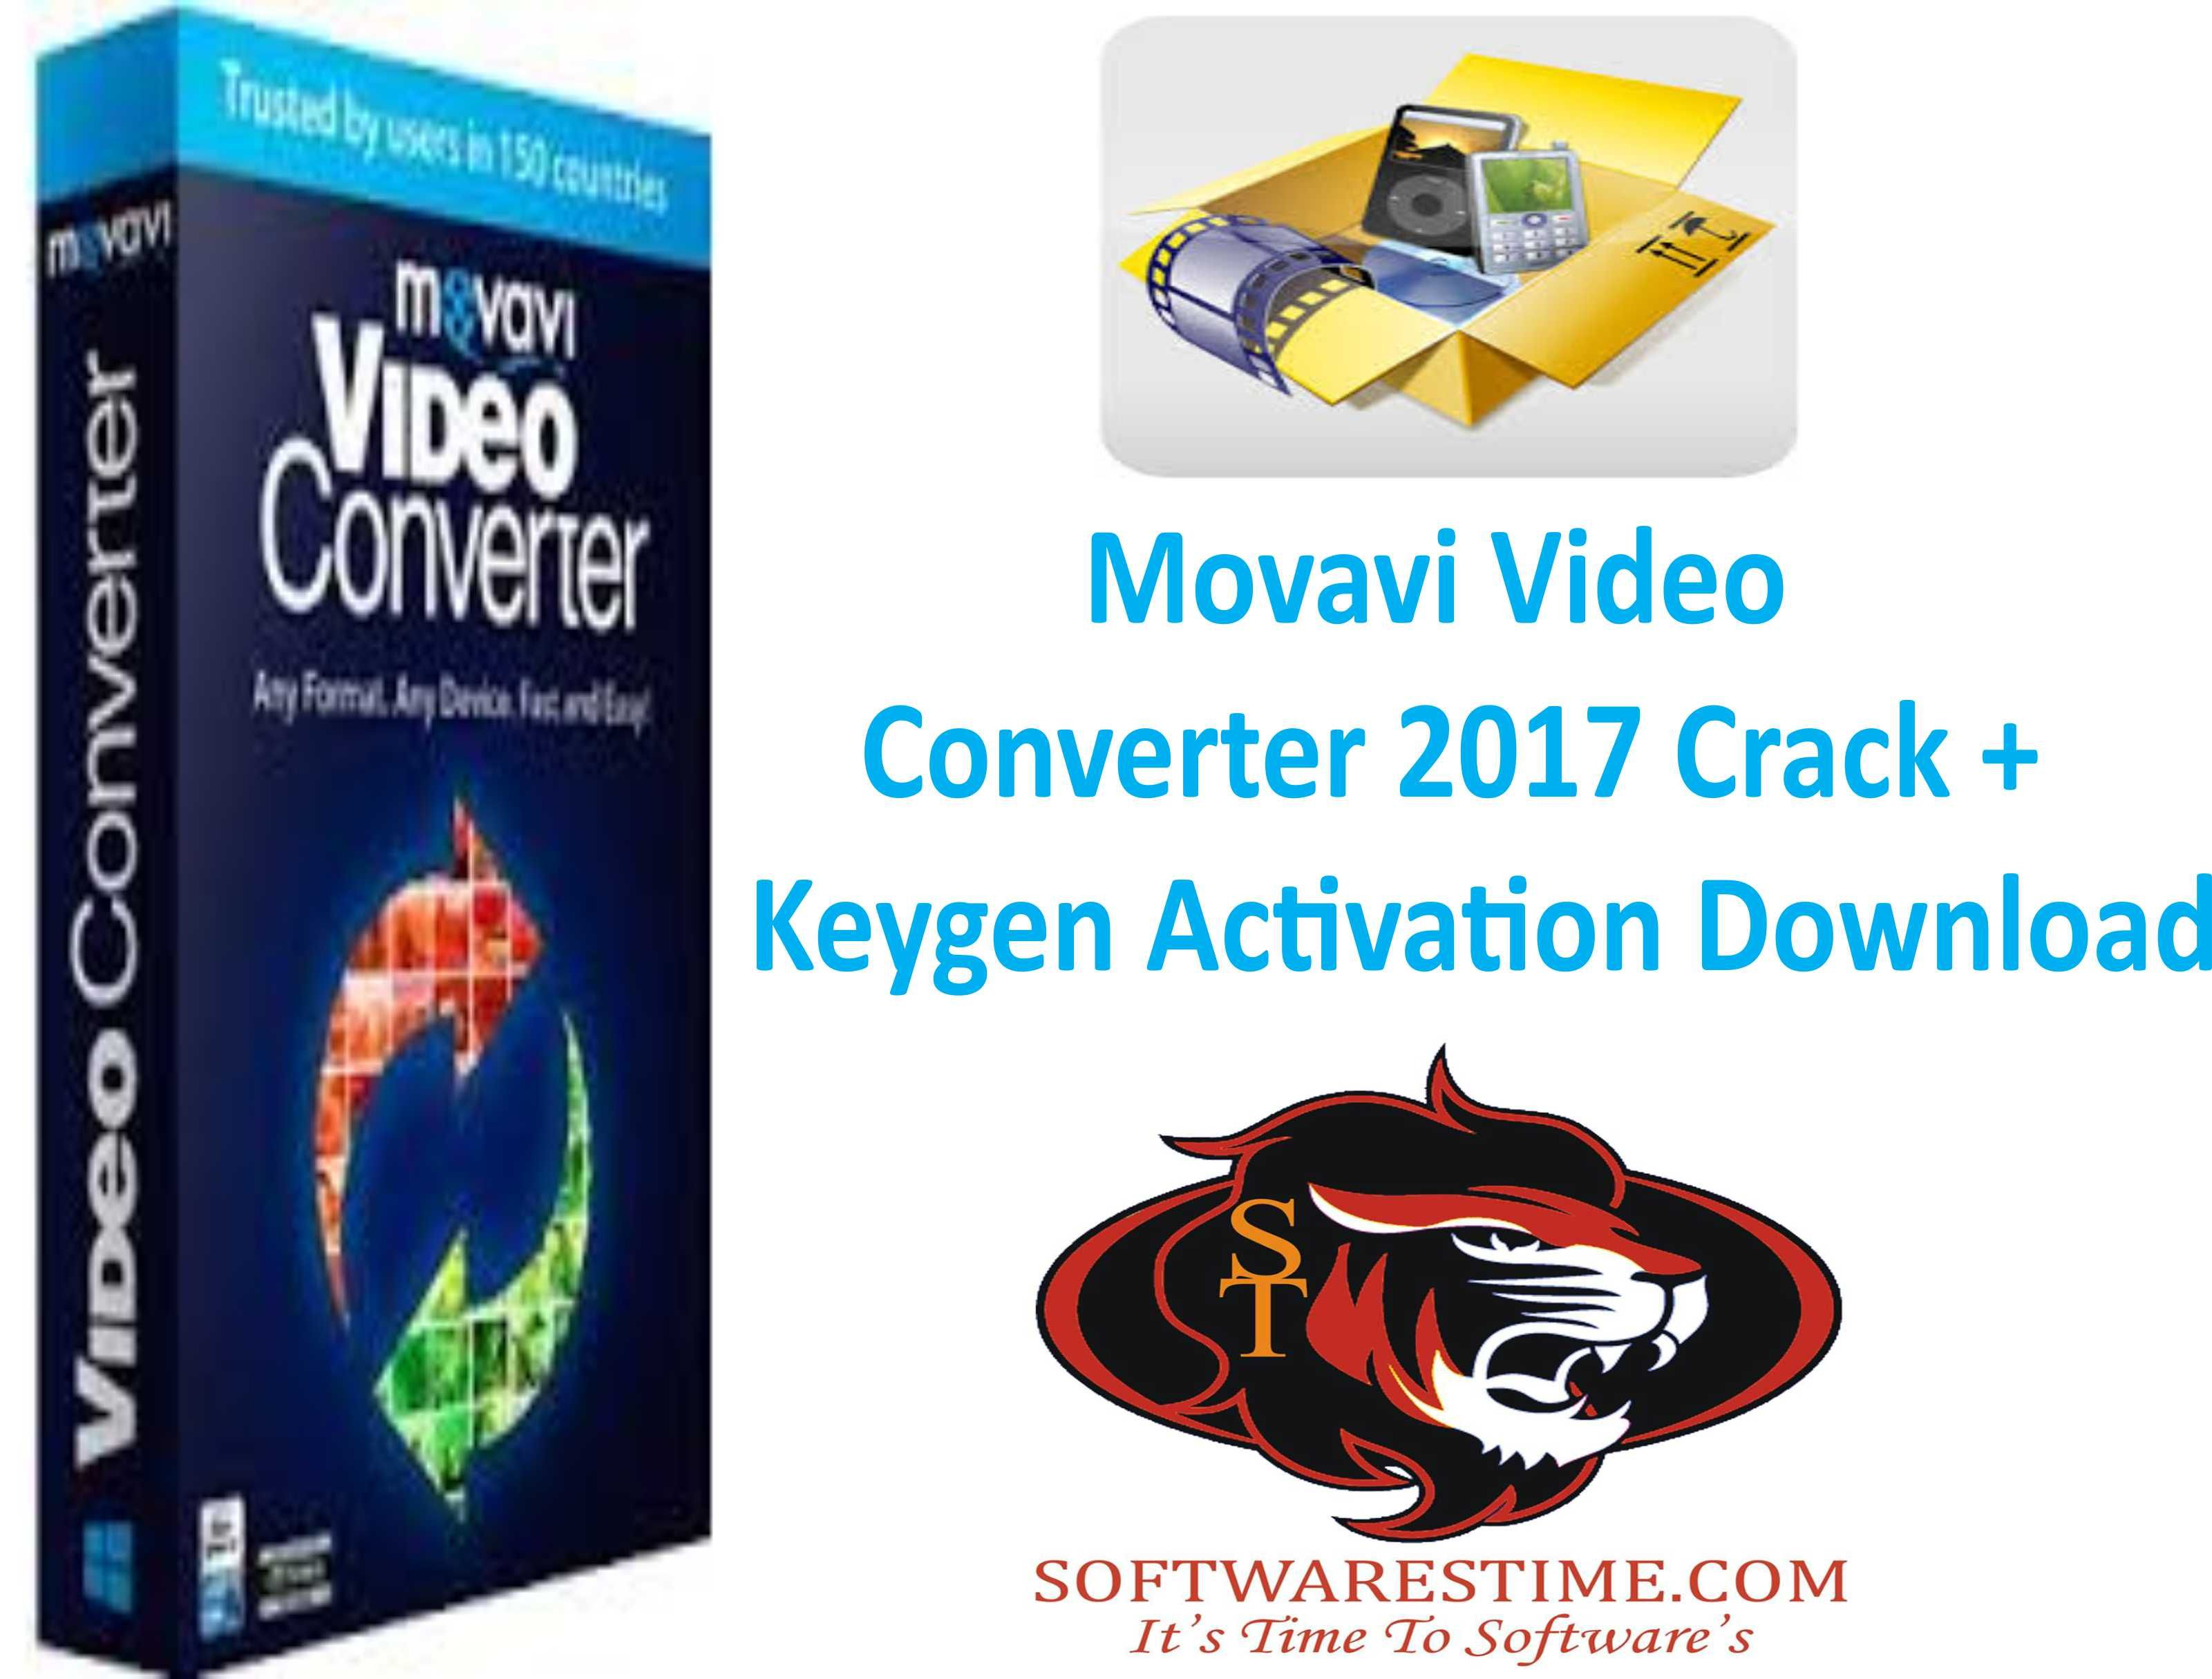 sigmakey cracked 2017 download